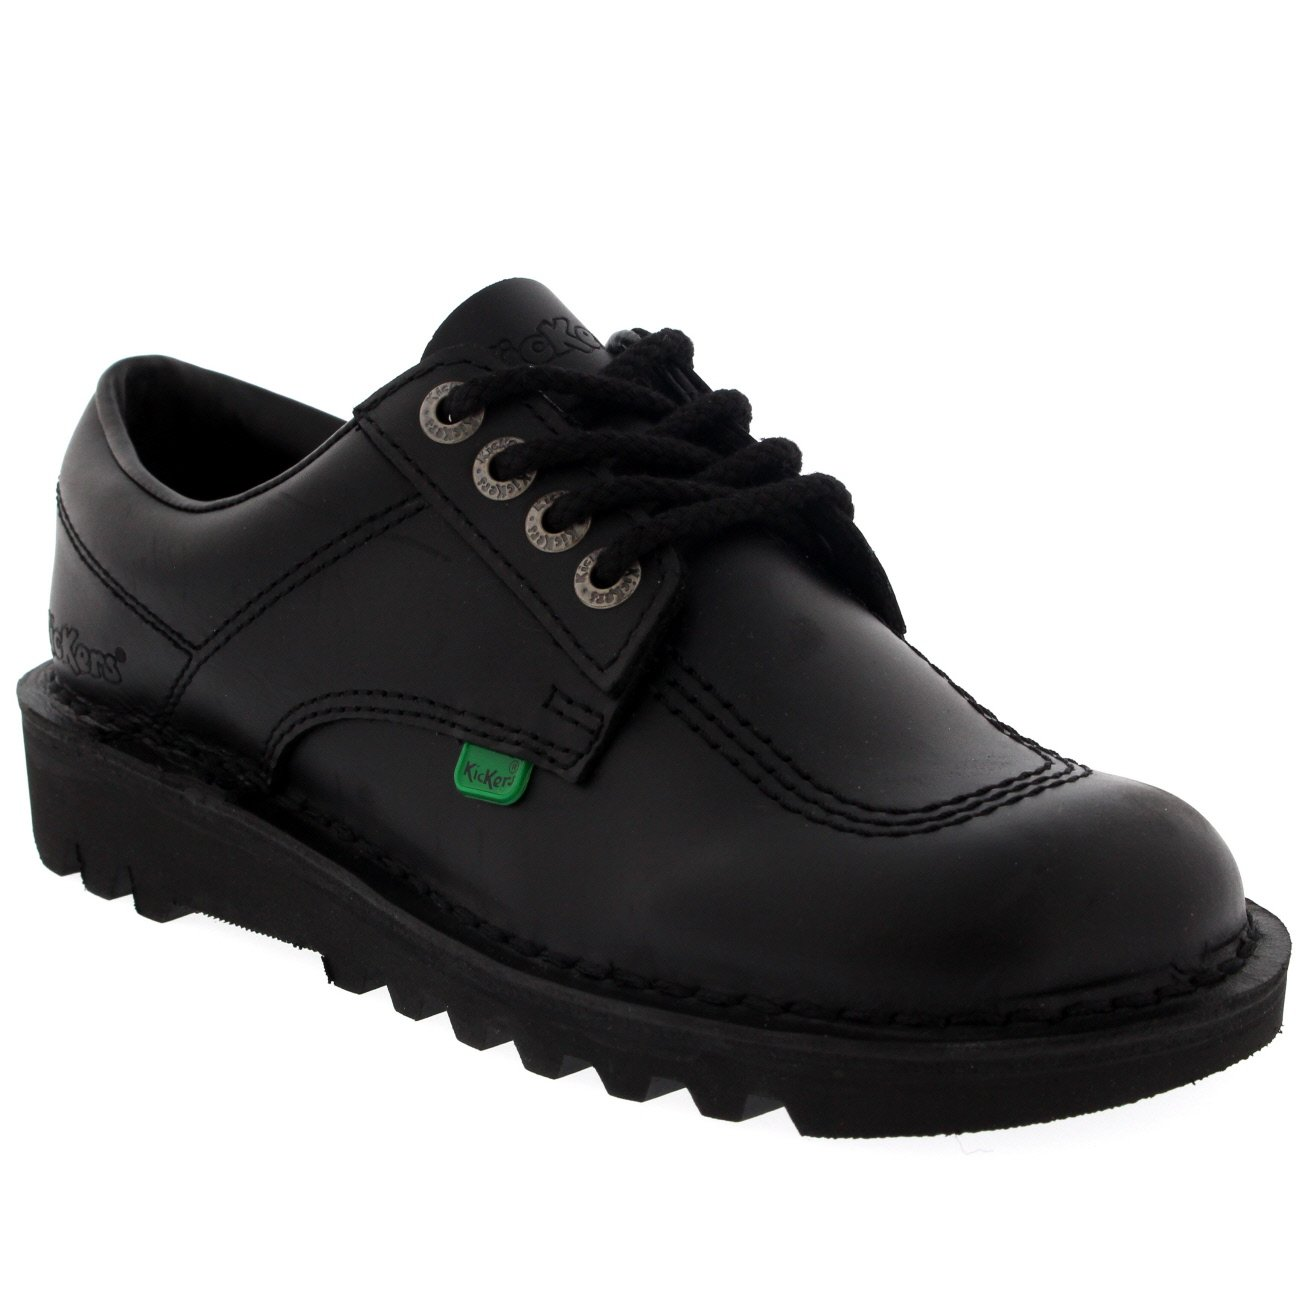 Unisex Kids Junior Kickers Kick Lo Leather Back To School Boot Shoes - Black - 13